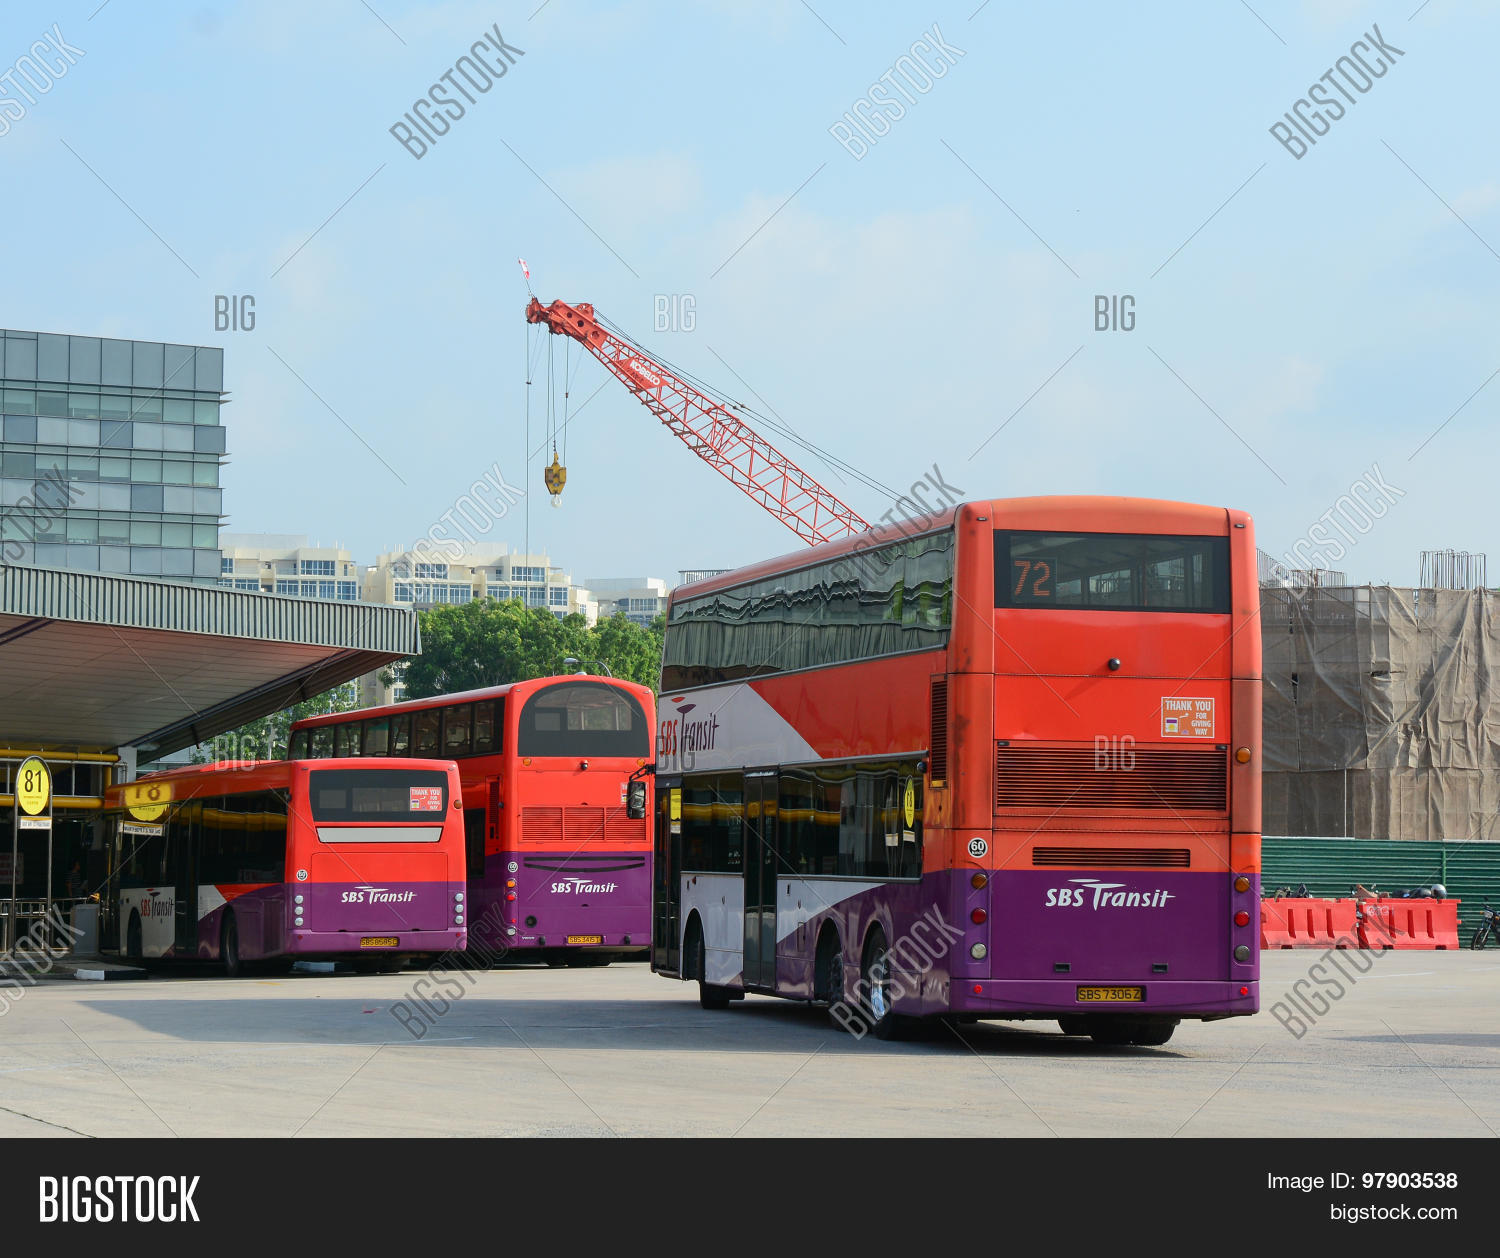 Public Commuter Buses Image & Photo (Free Trial) | Bigstock